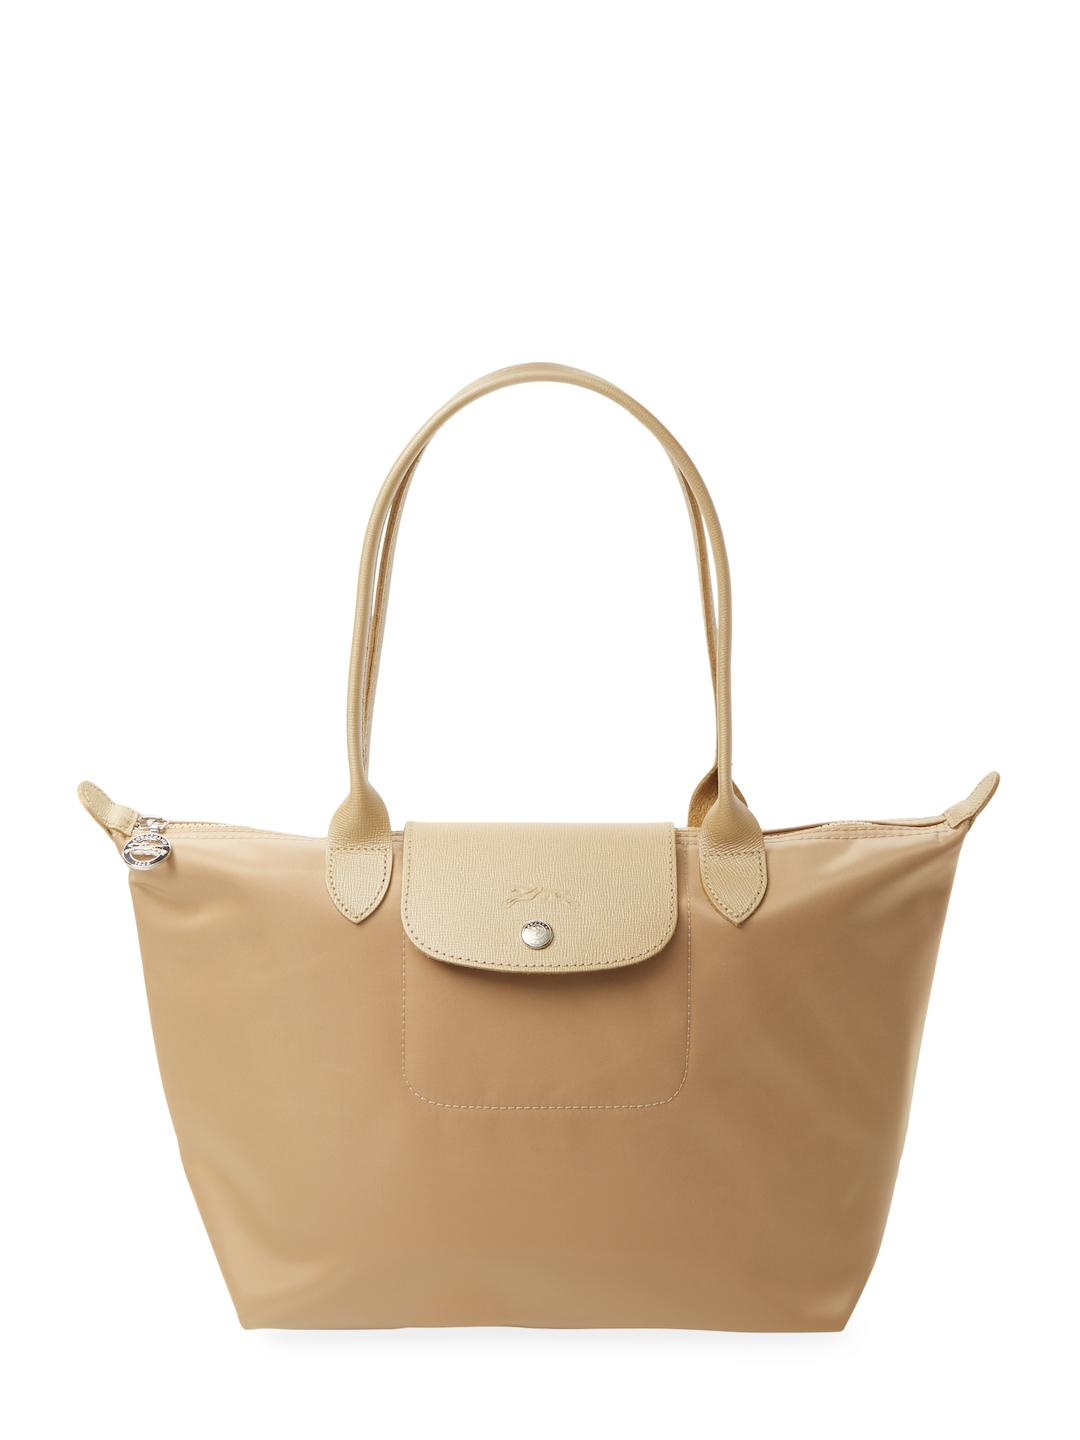 Longchamp Synthetic Le Pliage Nylon Tote in Beige (Natural)